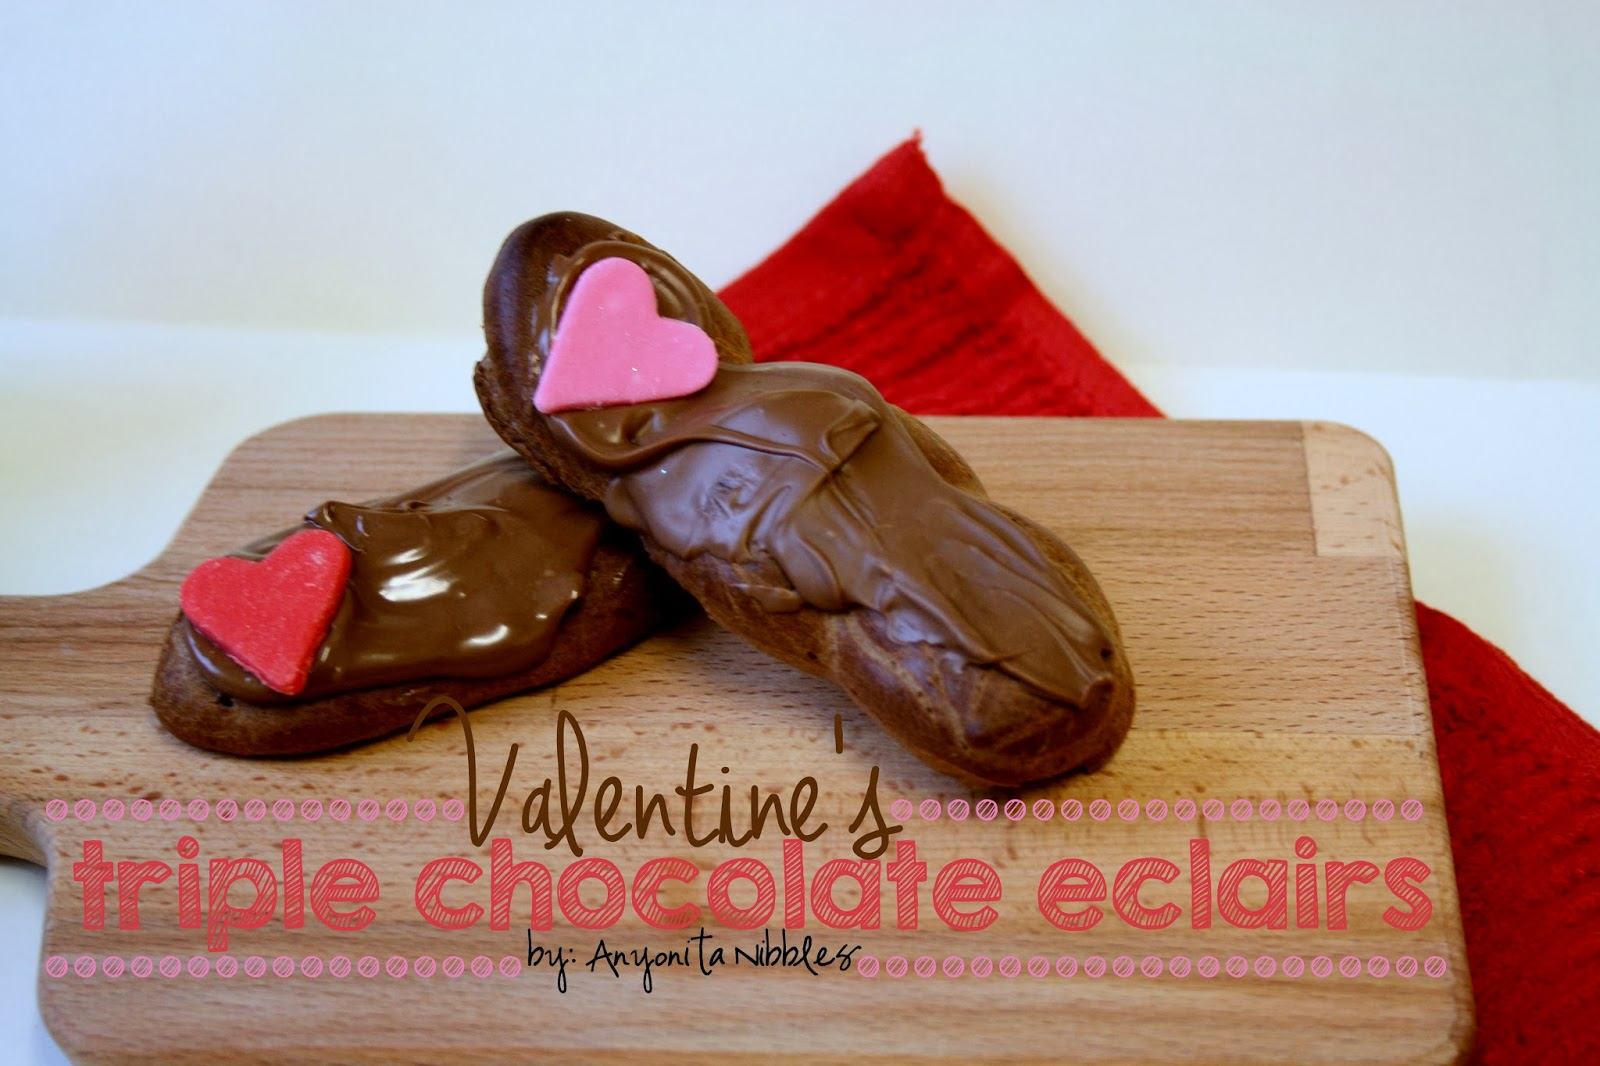 Valentine's triple chocolate eclairs with fondant hearts